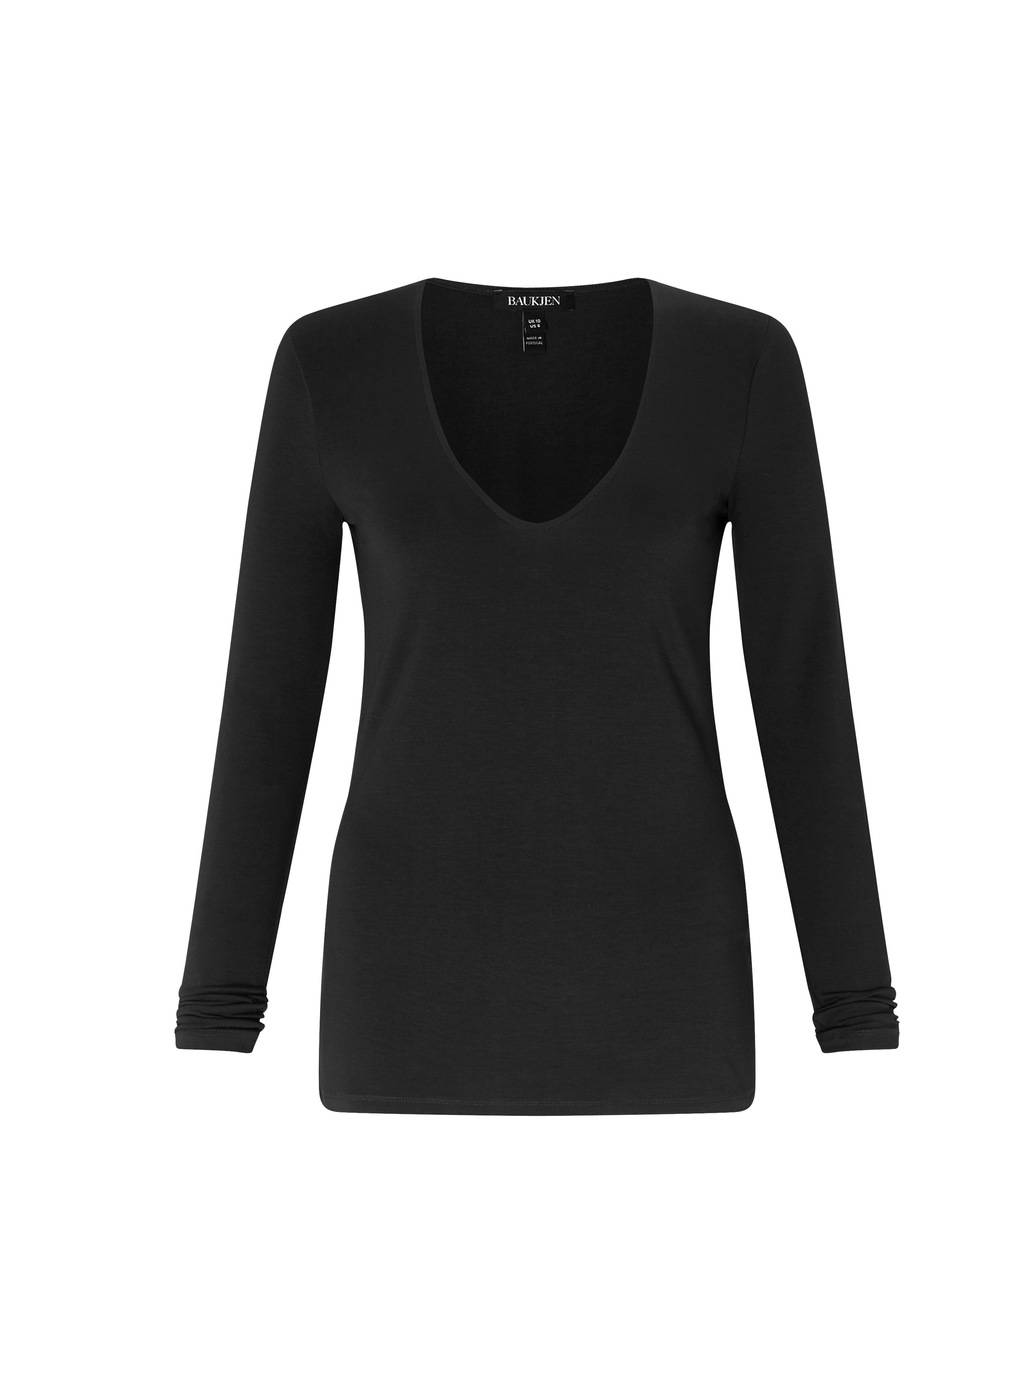 Womenswear Astell Top - neckline: v-neck; pattern: plain; predominant colour: black; occasions: casual; length: standard; style: top; fibres: viscose/rayon - stretch; fit: body skimming; sleeve length: long sleeve; sleeve style: standard; pattern type: fabric; texture group: jersey - stretchy/drapey; wardrobe: basic; season: a/w 2016